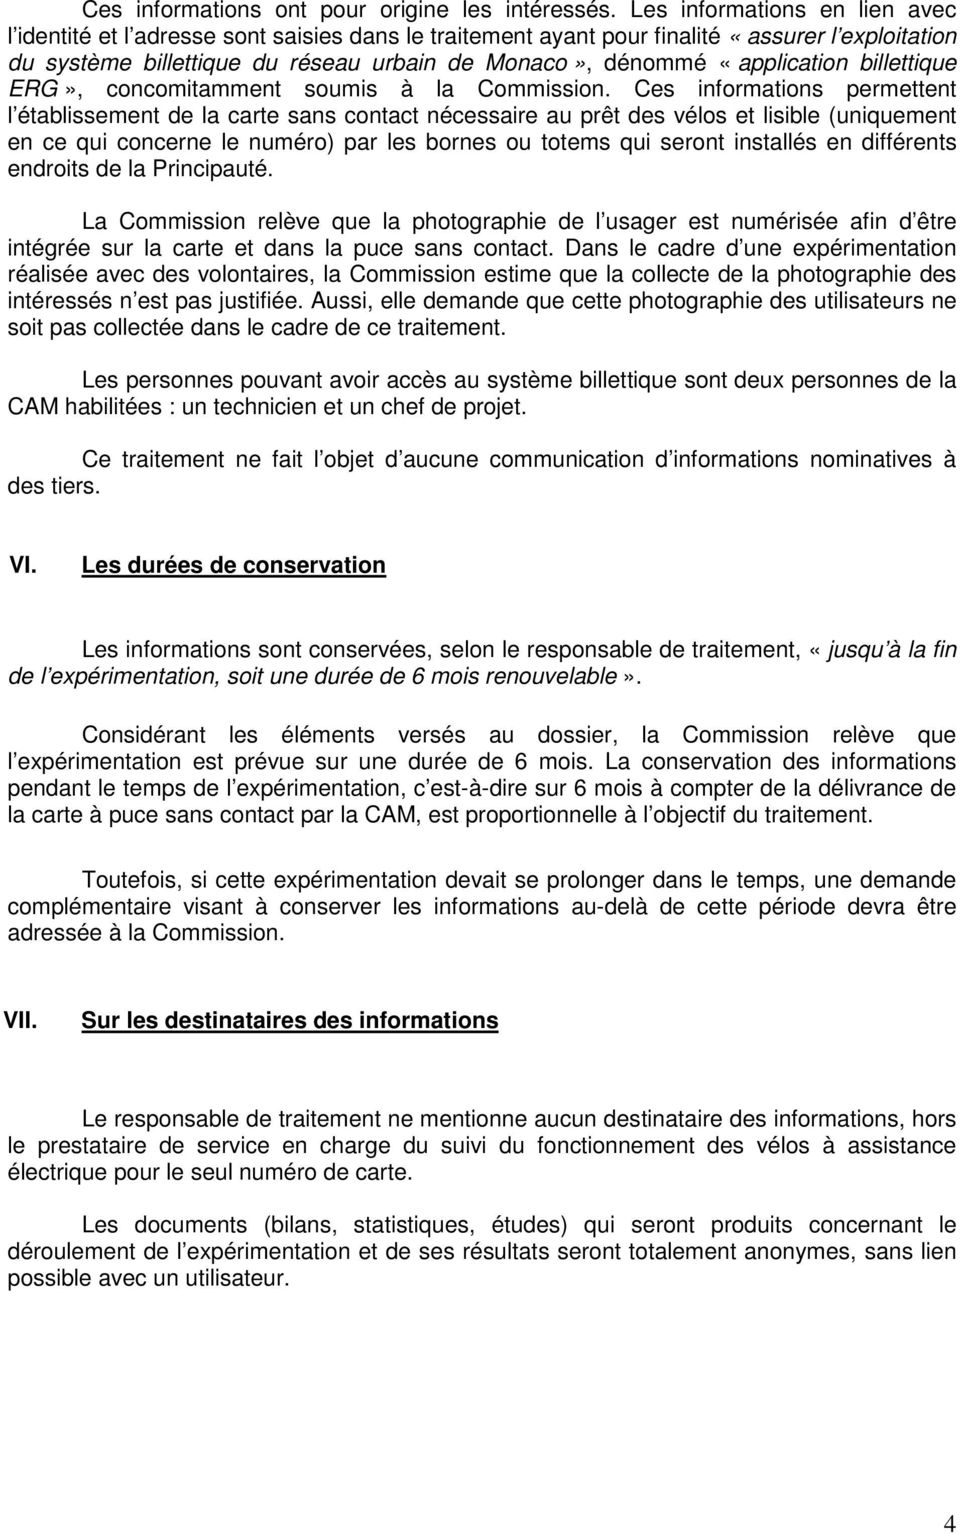 «application billettique ERG», concomitamment soumis à la Commission.